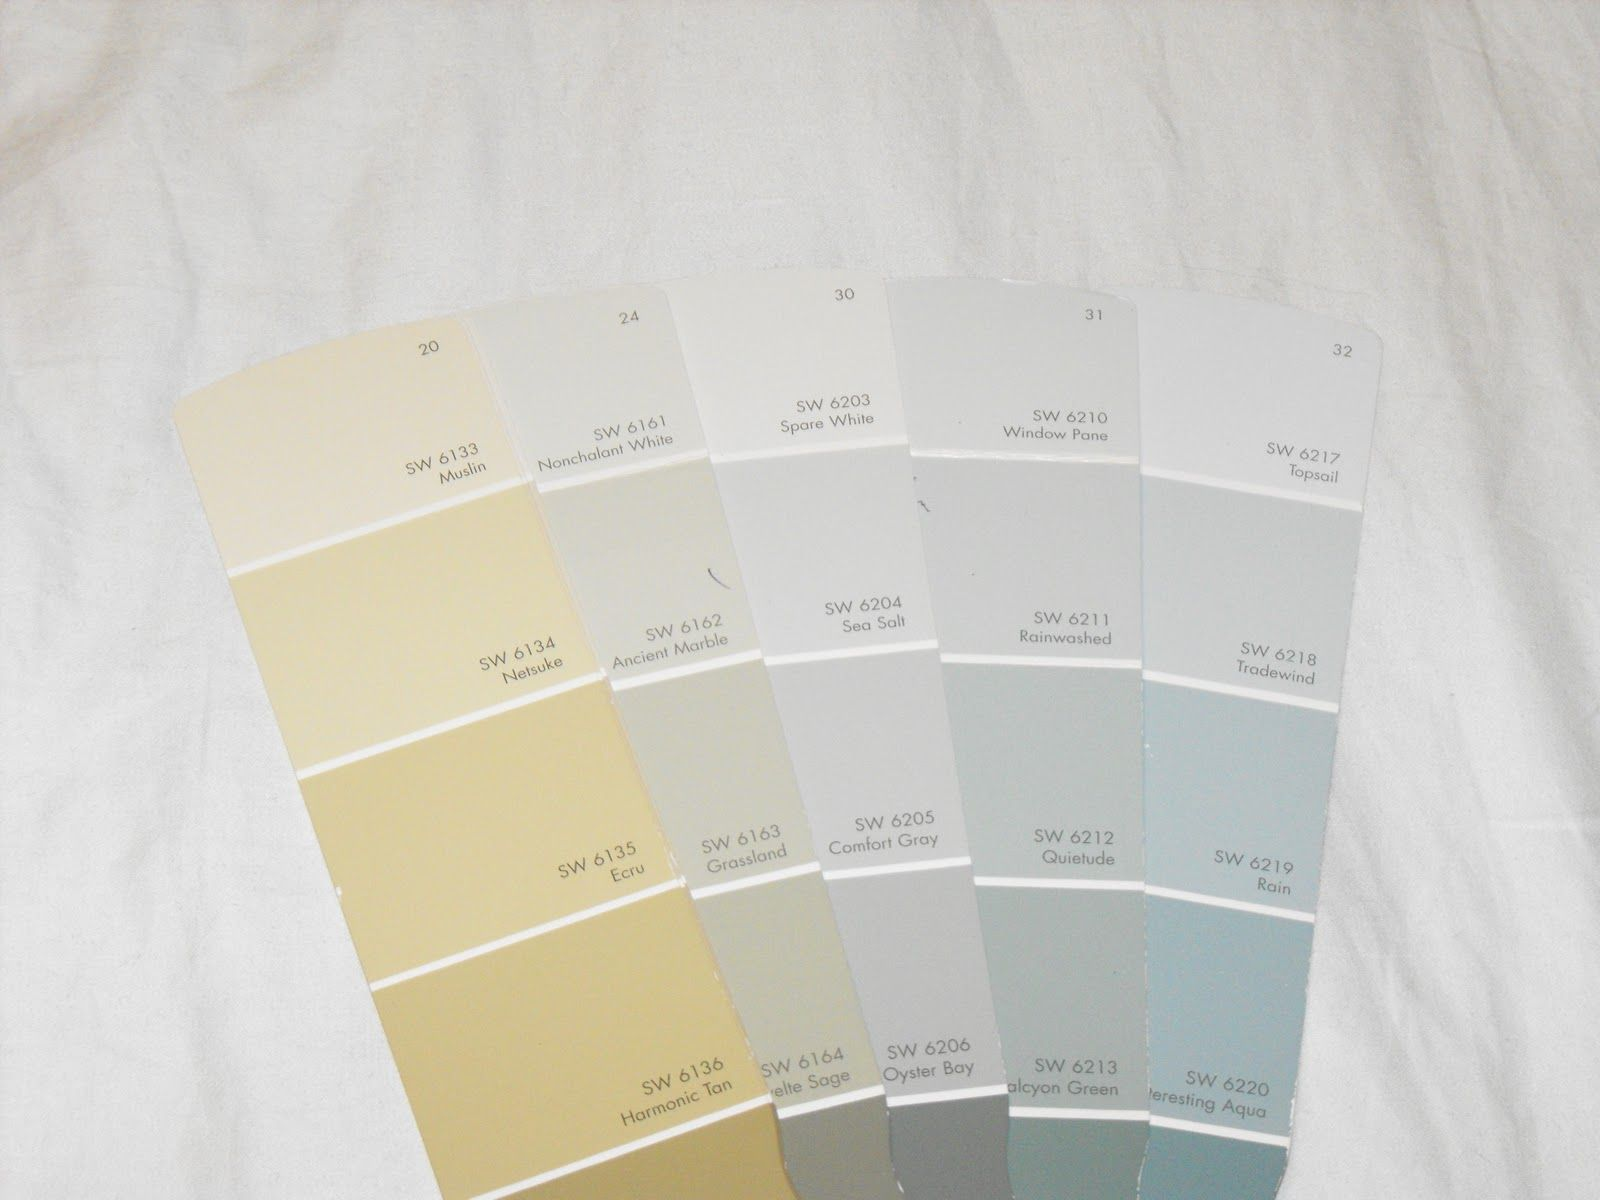 Sherwin williams topsail google search for the walls pinterest sherwin williams topsail google search nvjuhfo Image collections